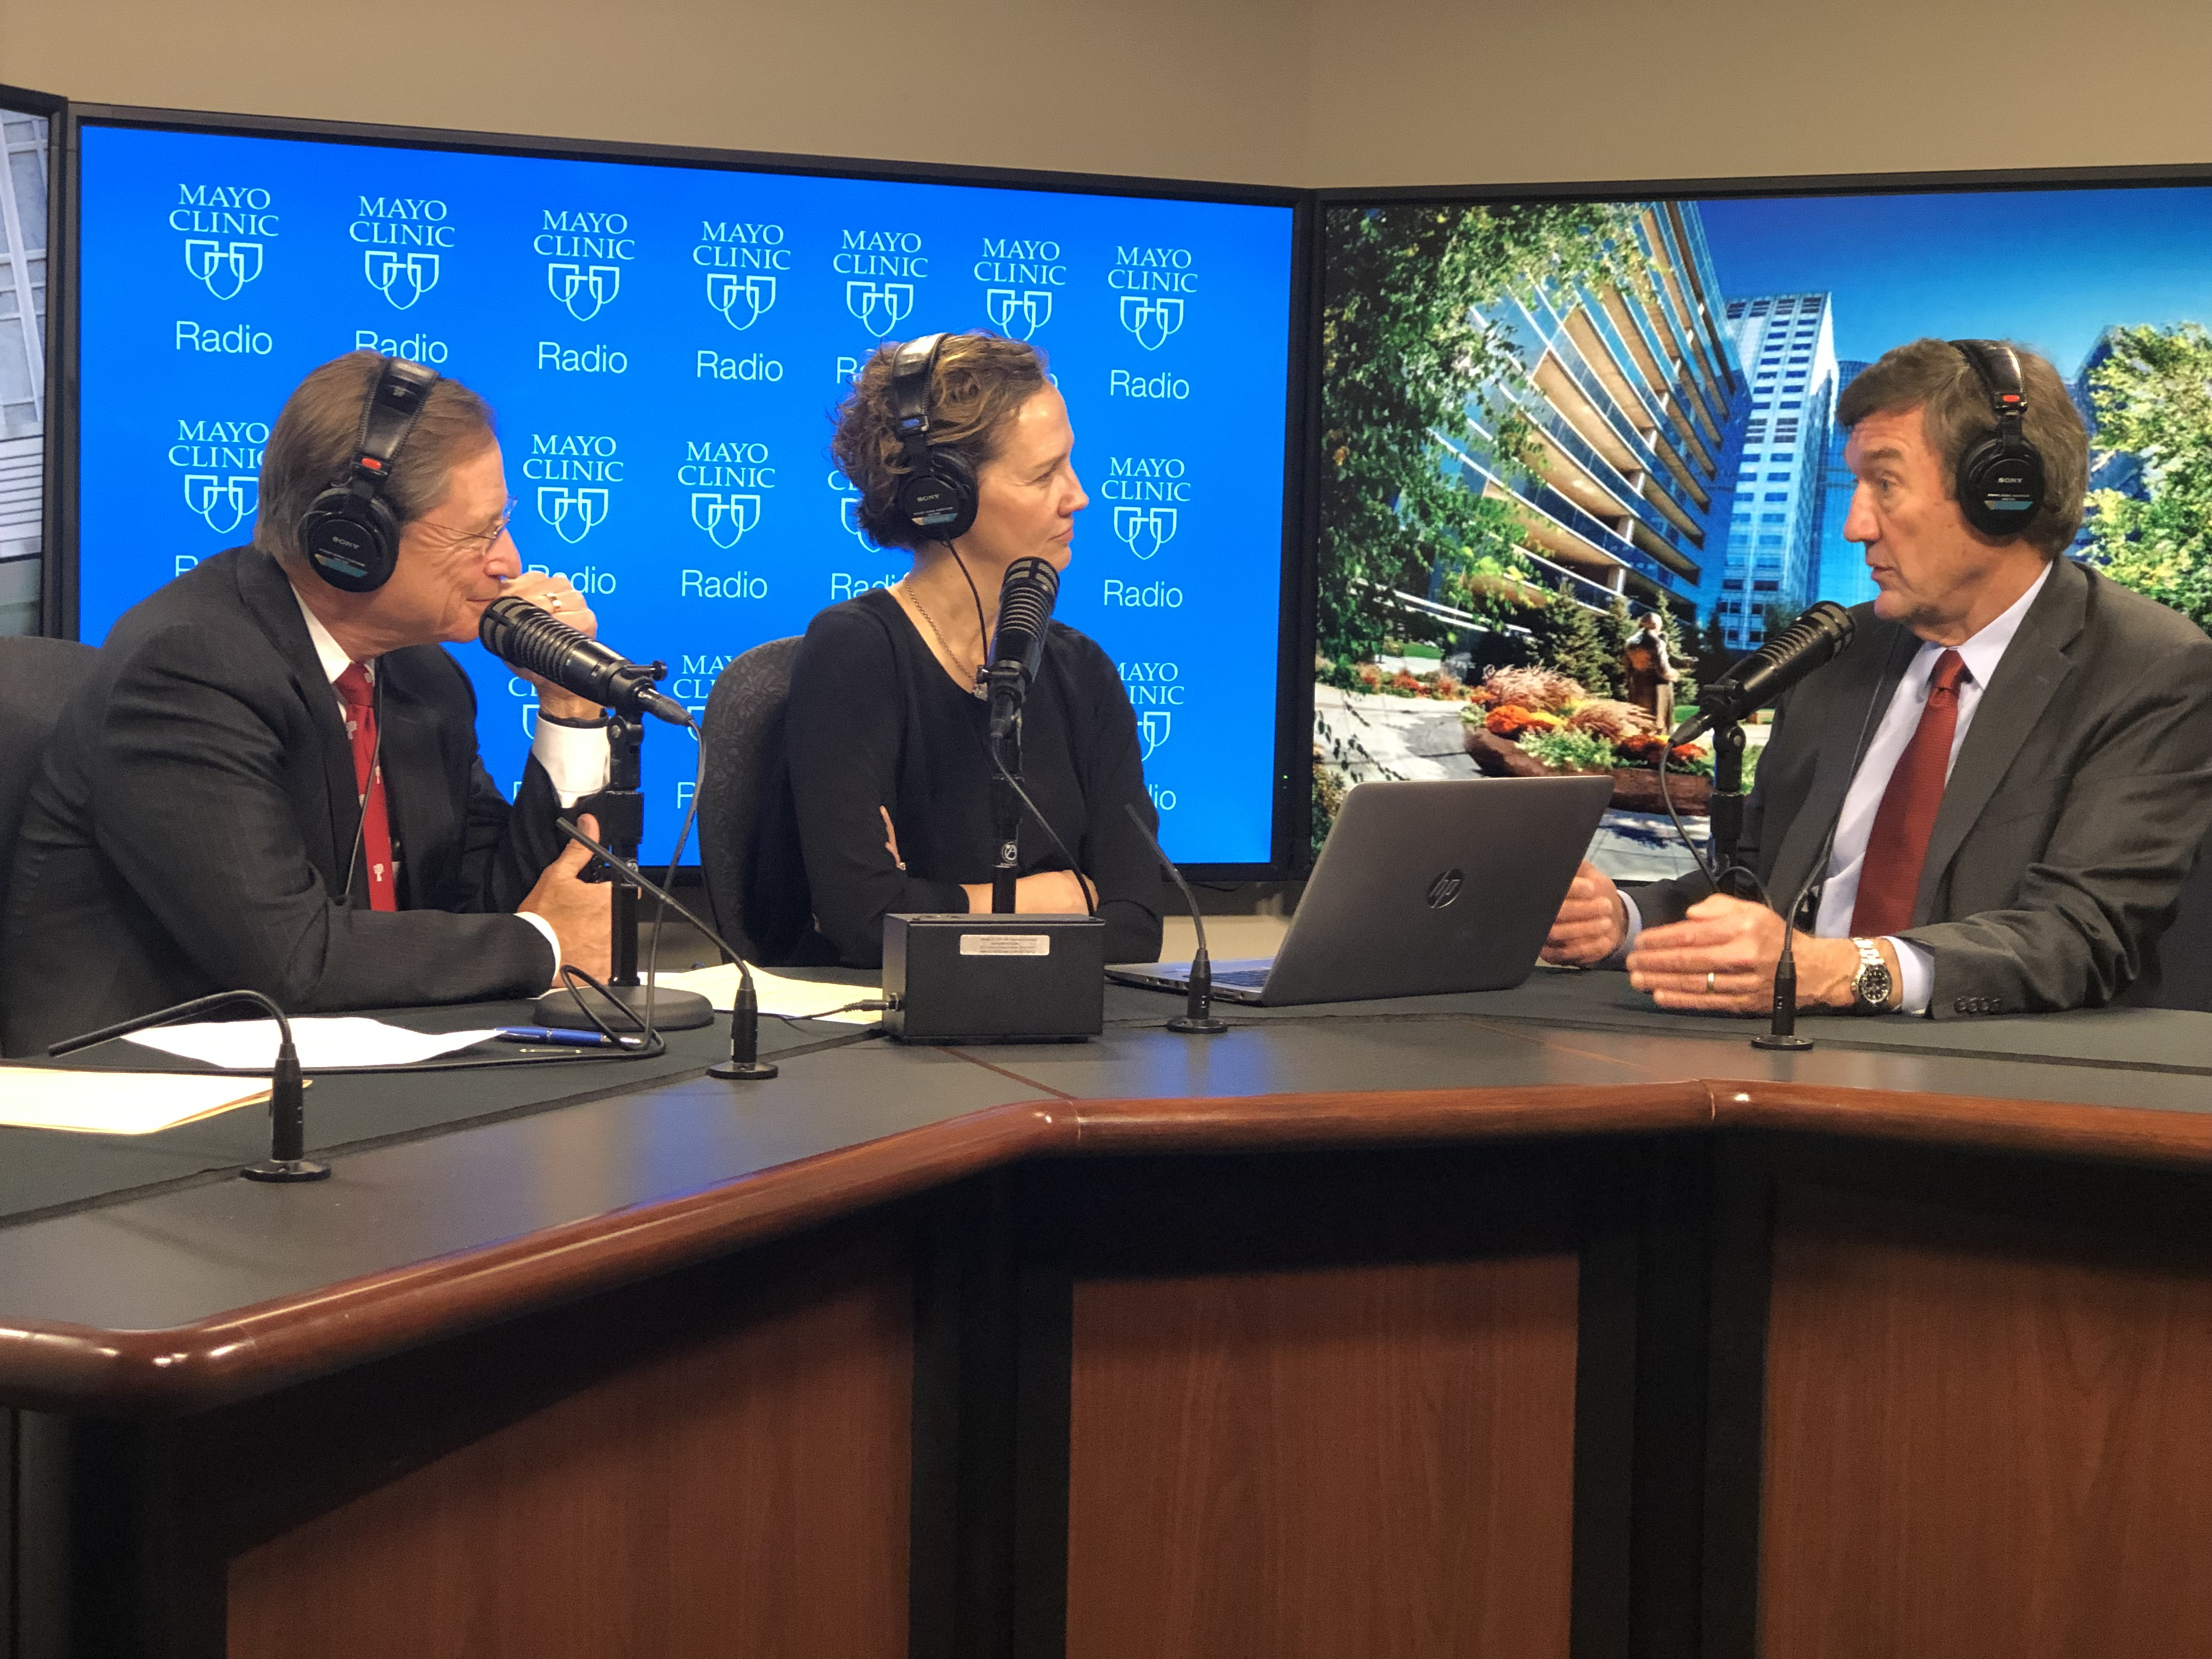 Dr. John Noseworthy being interviewed on Mayo Clinic Radio